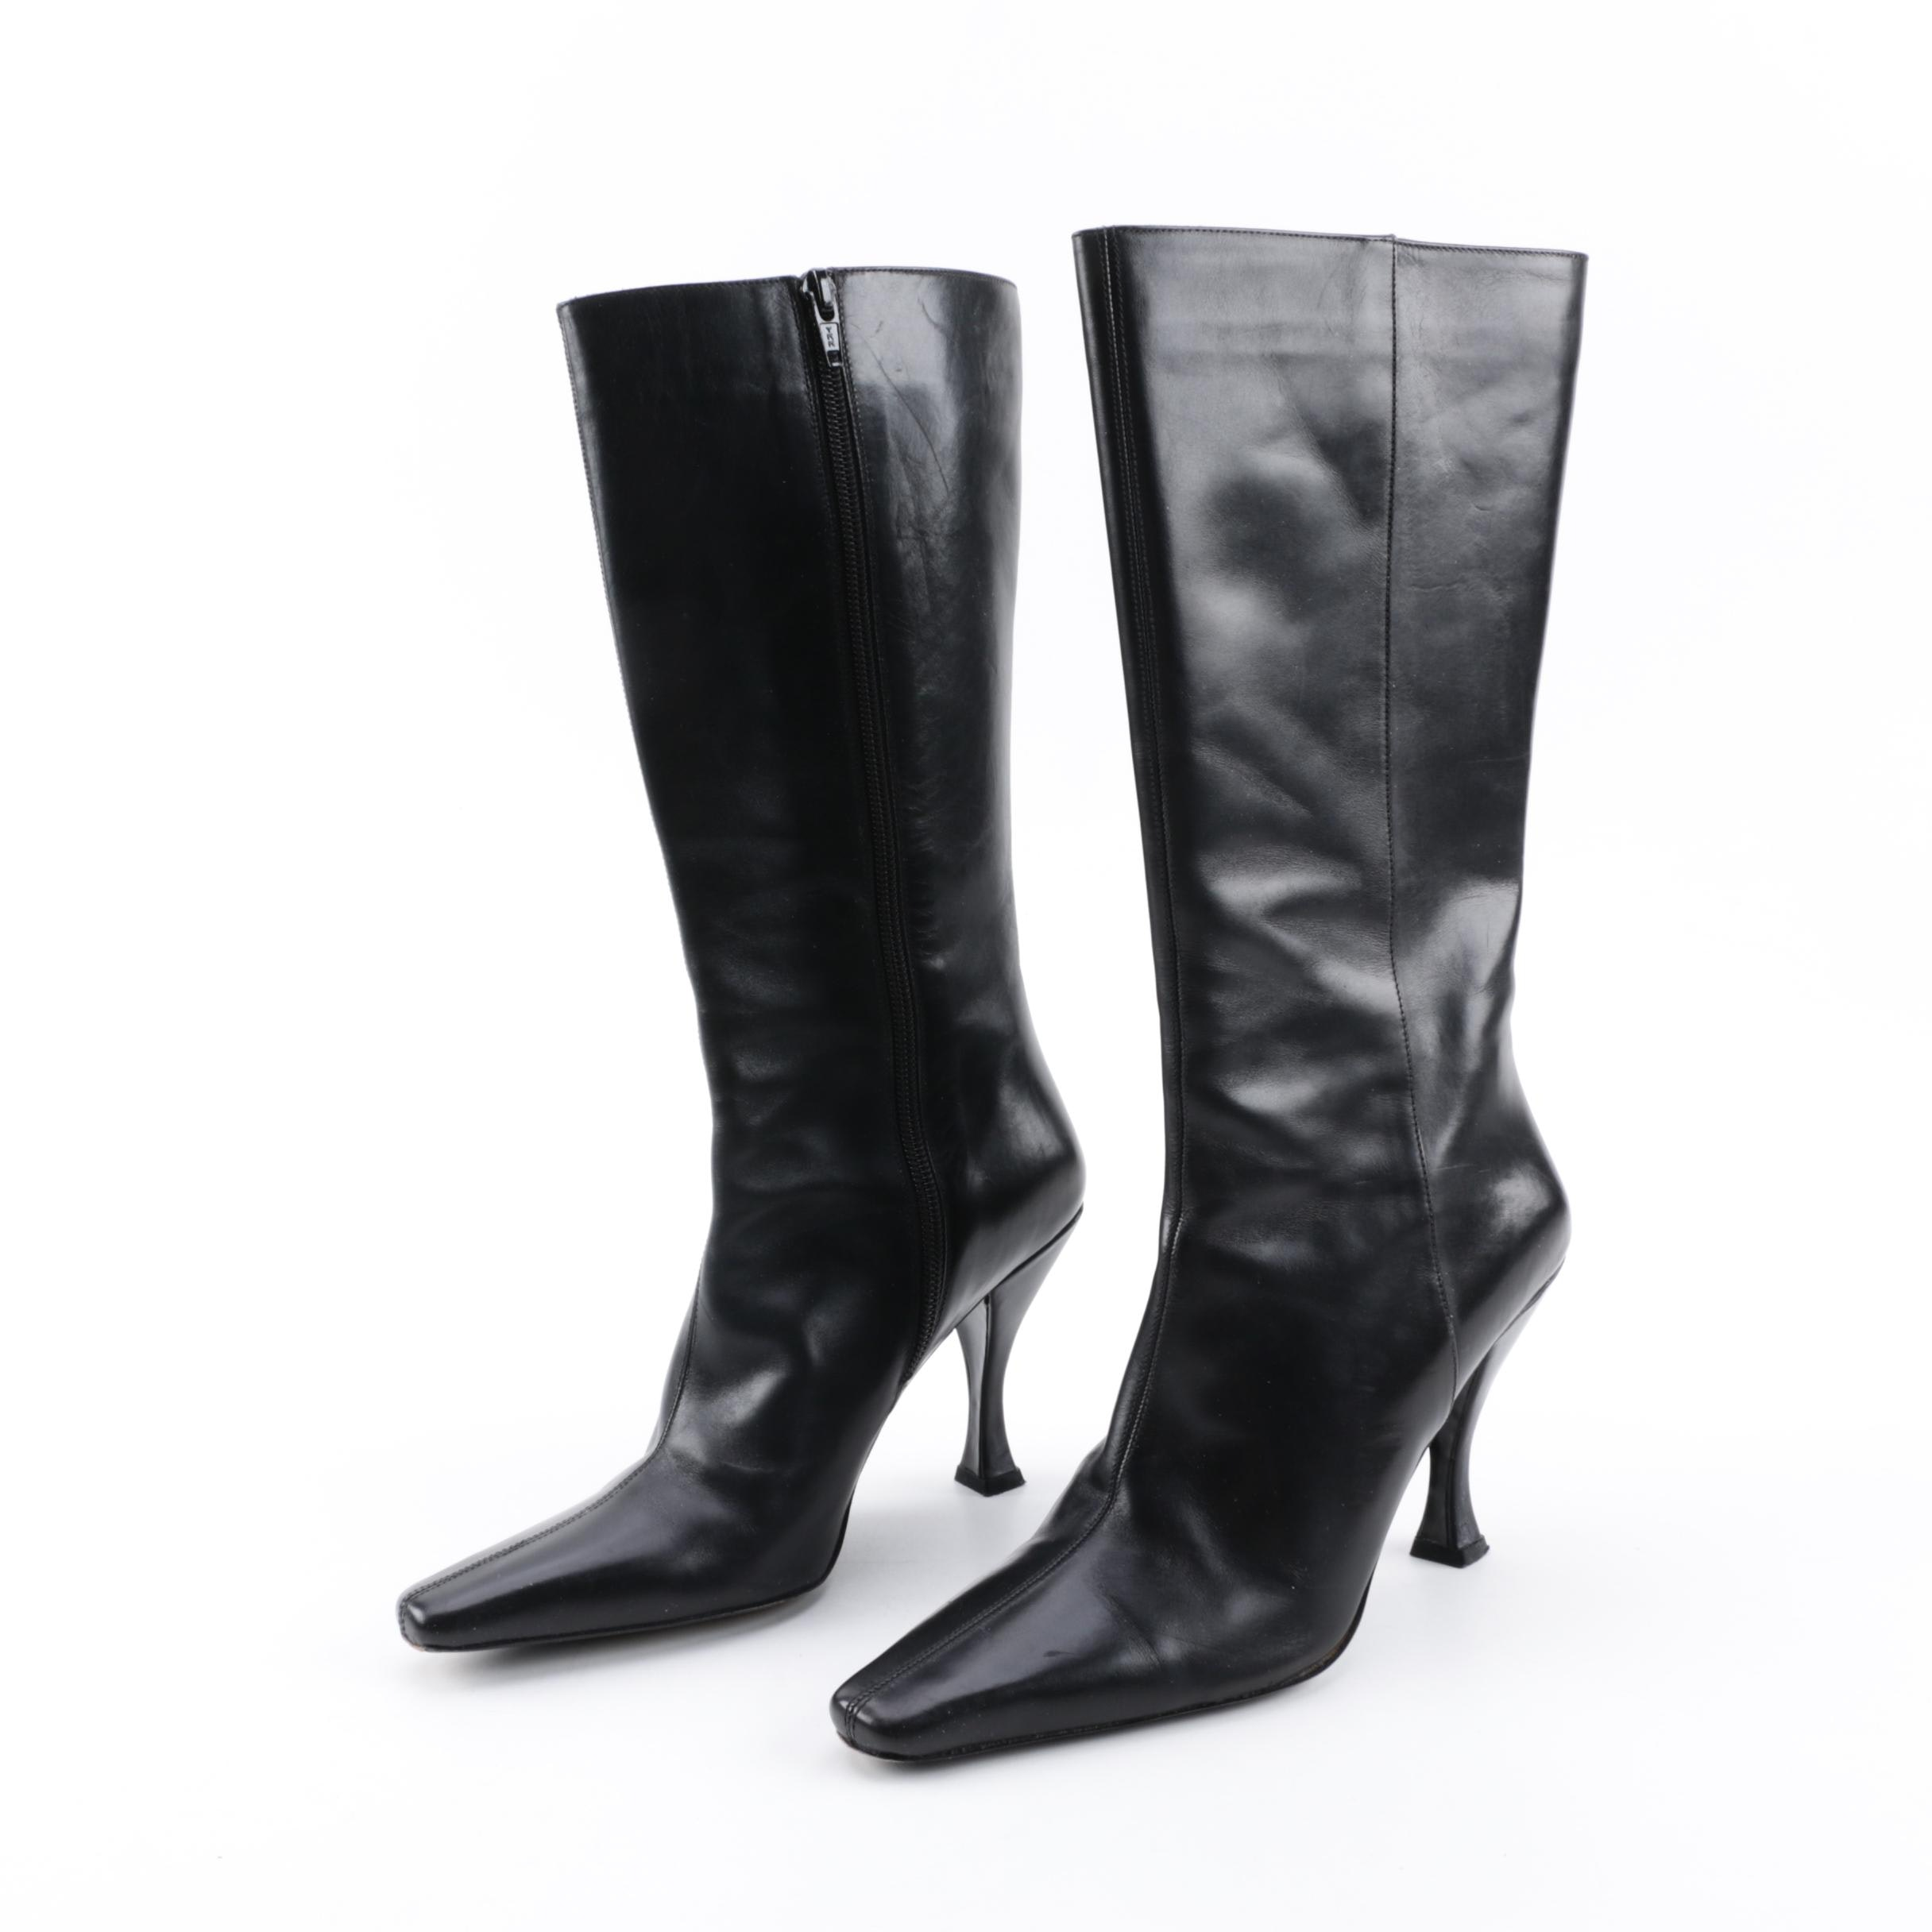 Women's Via Spiga Glame Black Leather Pointed Toe Heeled Tall Boots